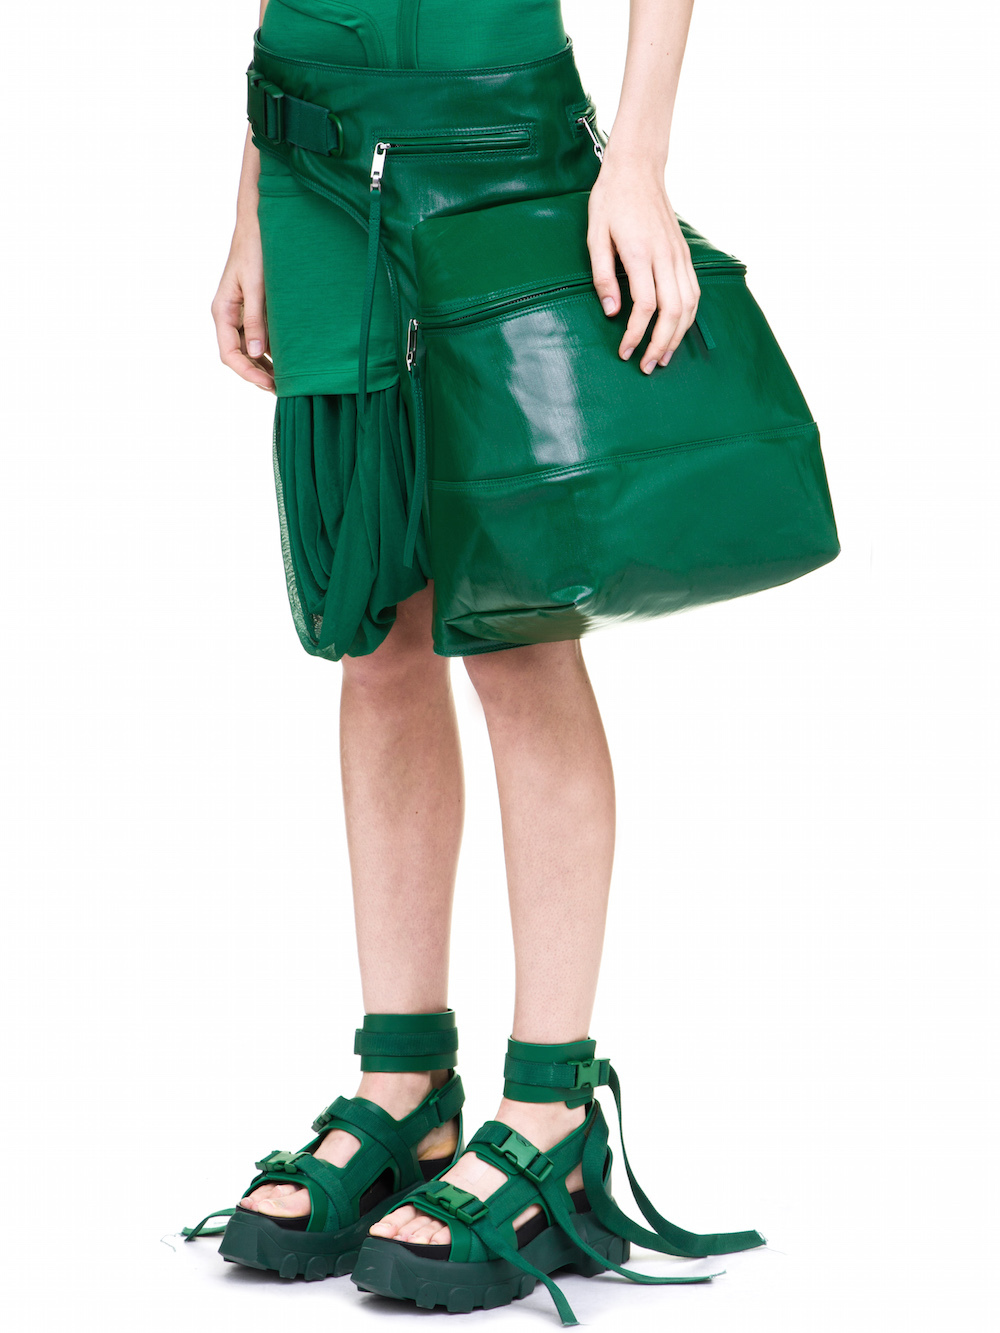 RICK OWENS CARGO CHAP IN GREEN